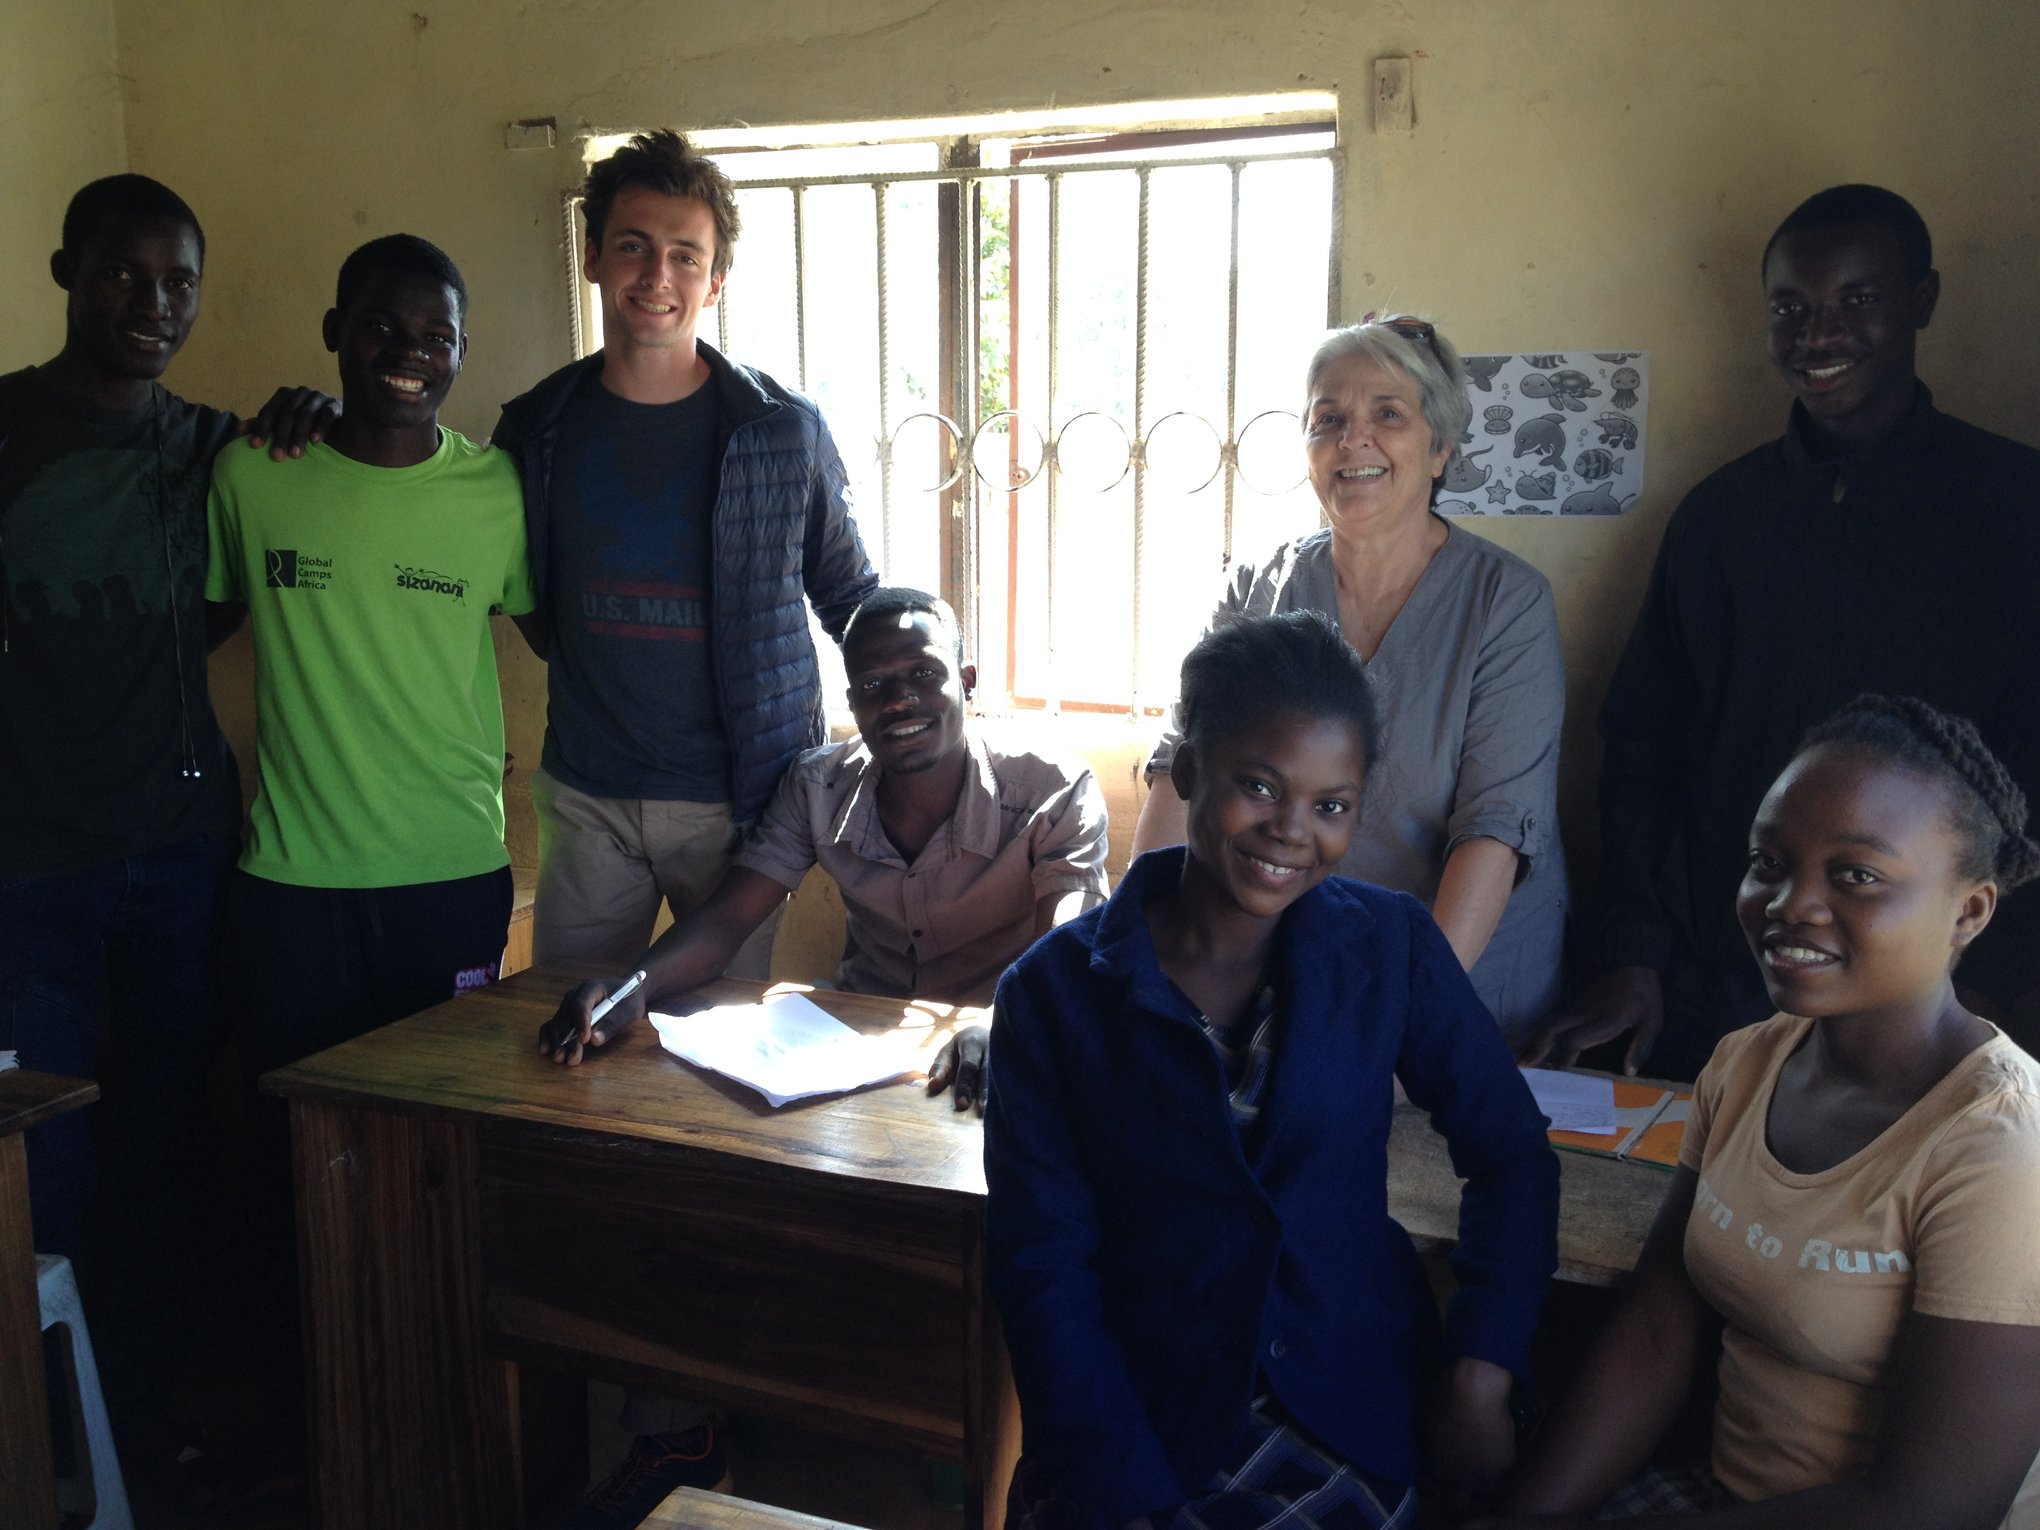 Alexandre and AEP's #1 Volunteer, Momma Mario, pose for a photo after a history class.